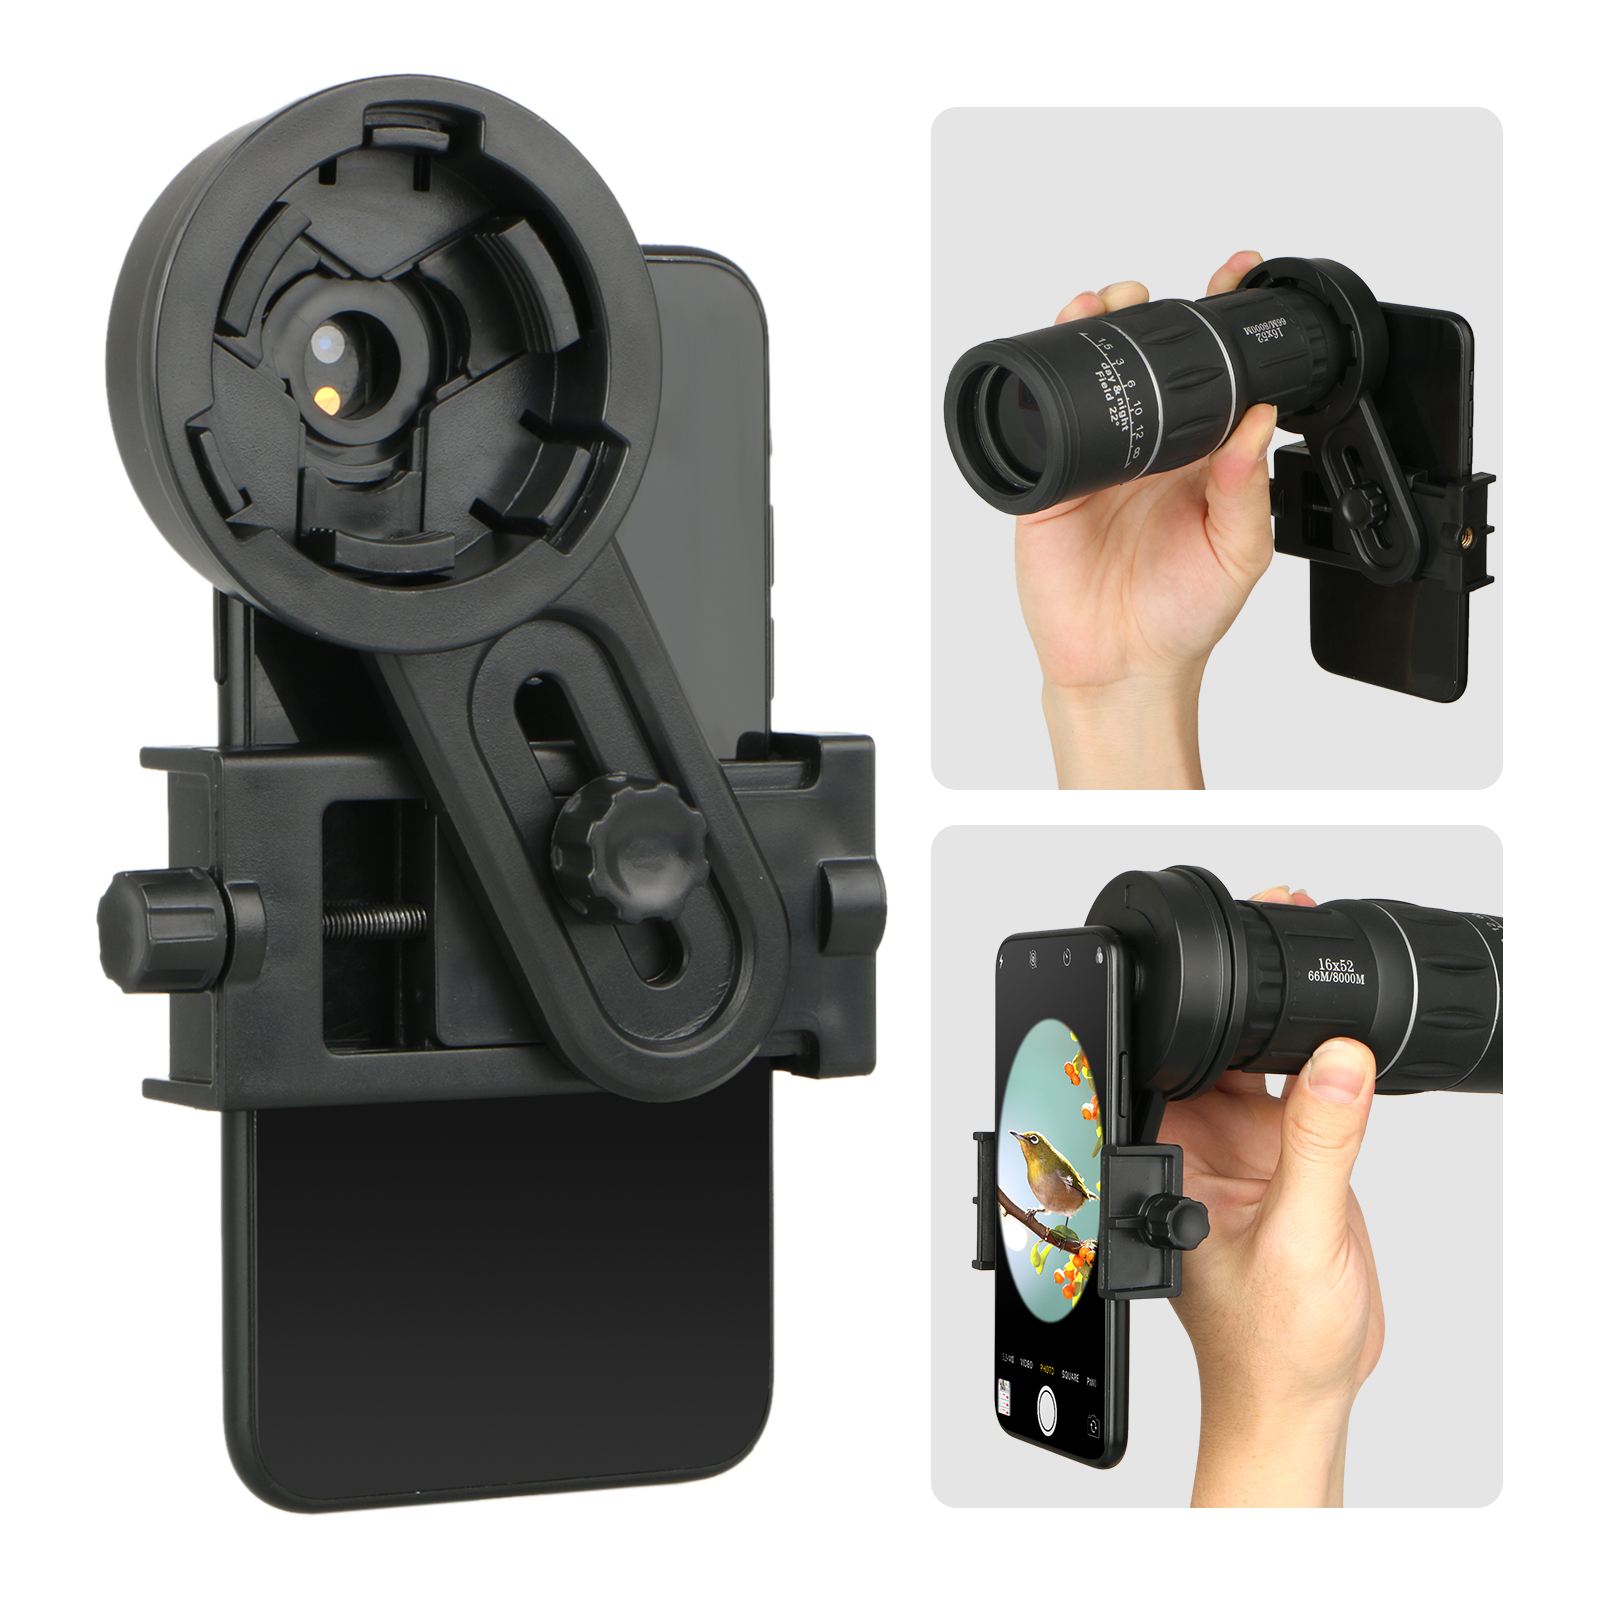 ESSLNB Cell Phone Adapter Mount Spotting Scope Universal Cell Phone Adapter for Telescope Sucker Mobile Device Holder 180/°Angle and Length Adjustment for Binoculars Monocular